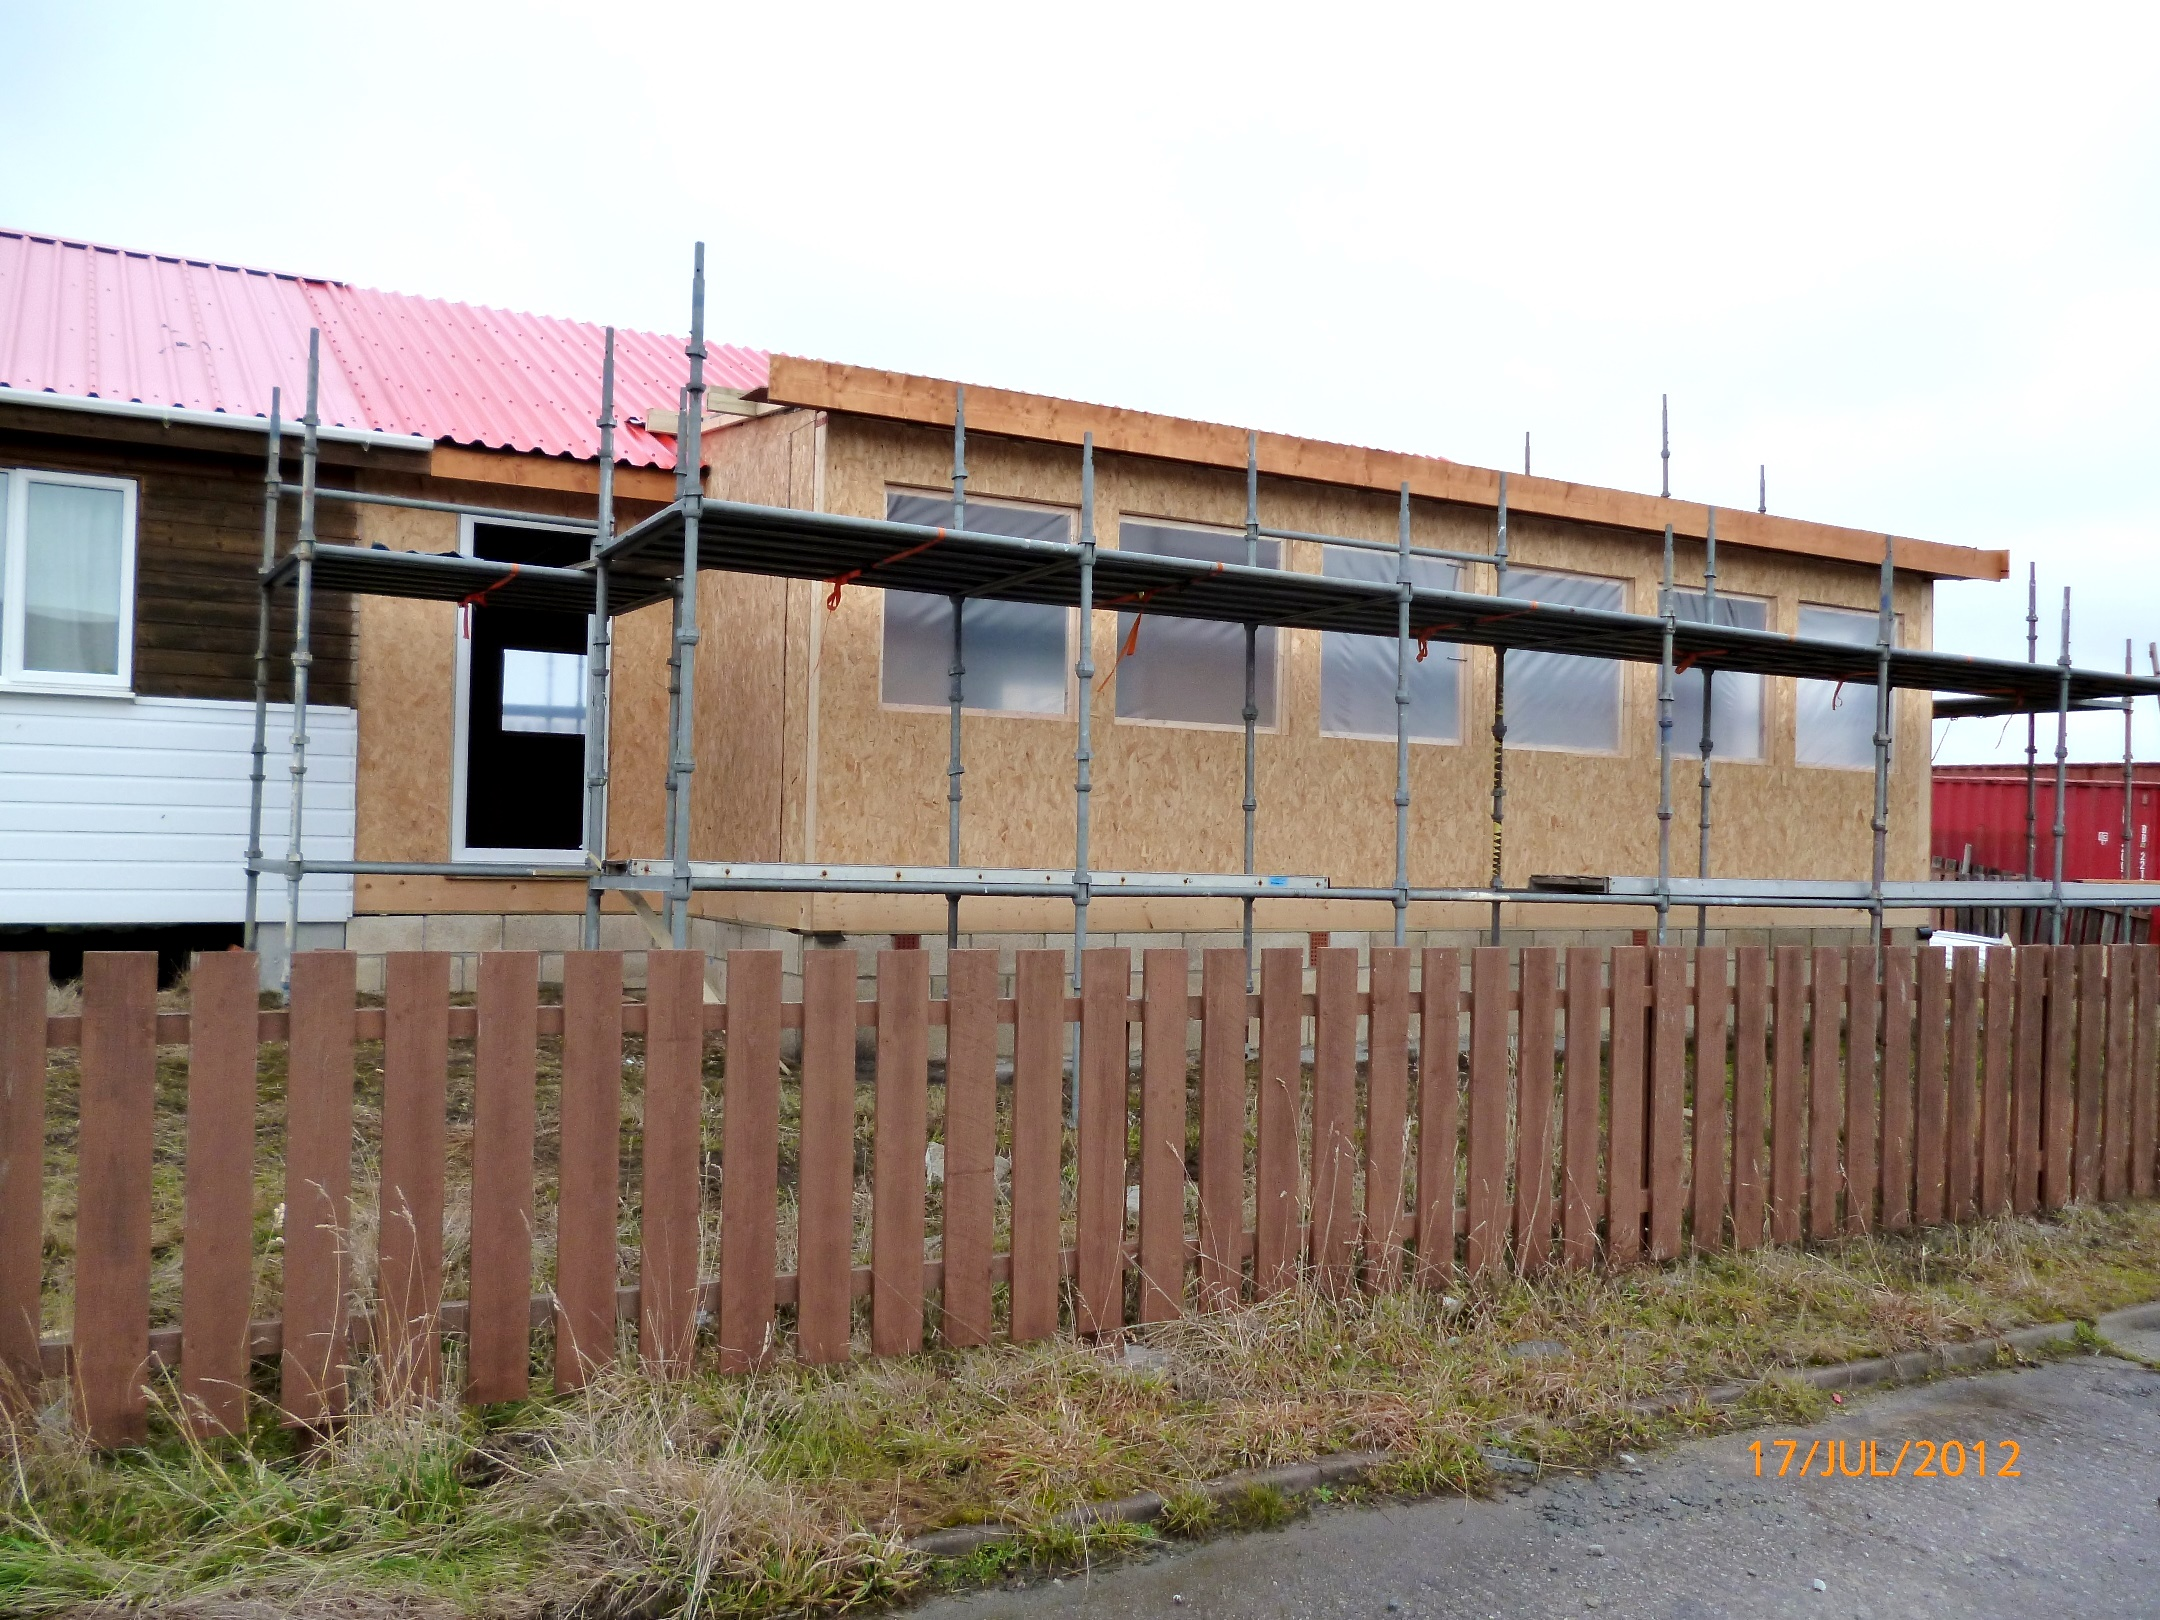 Single Dwelling, Private Client, Stanley, Falkland Islands